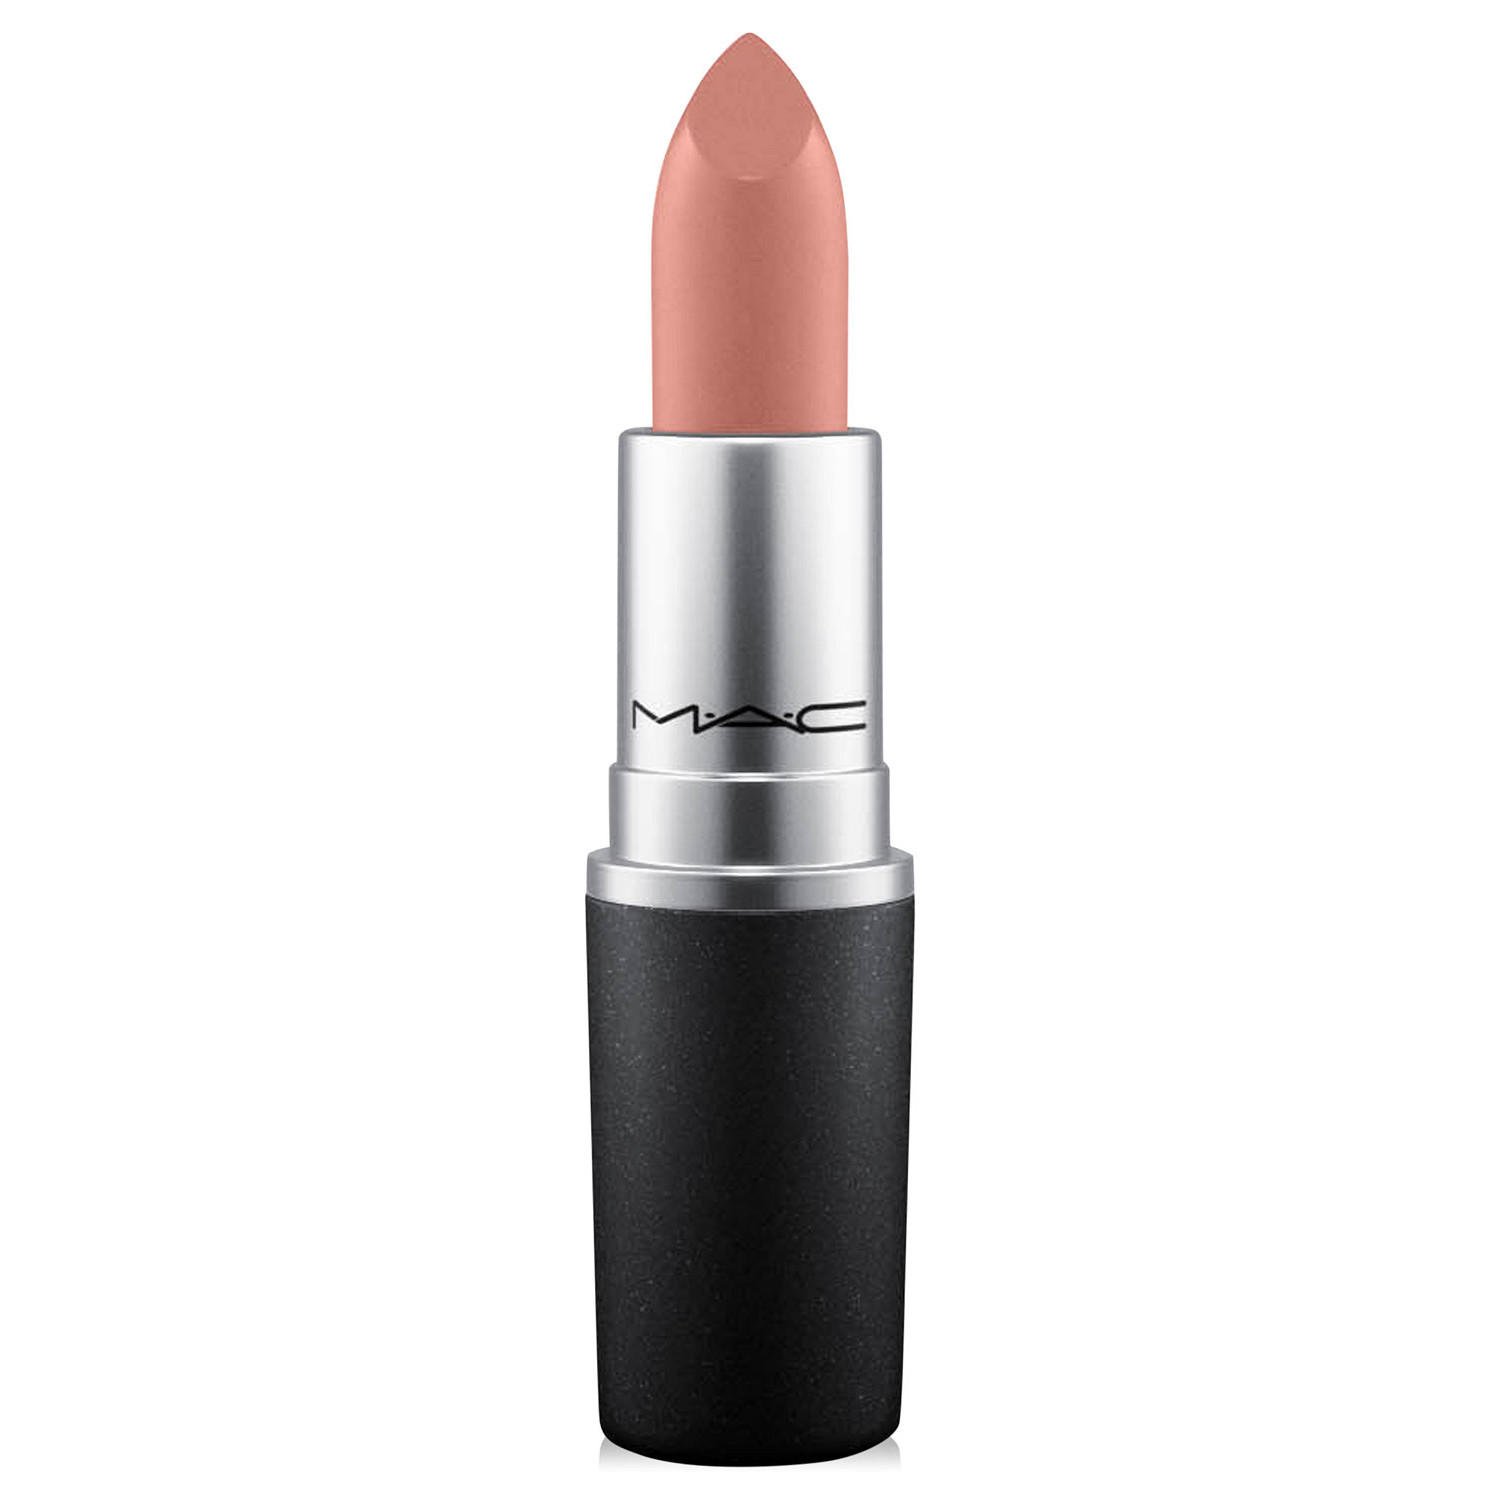 MAC Lipstick Age/Sex/Location